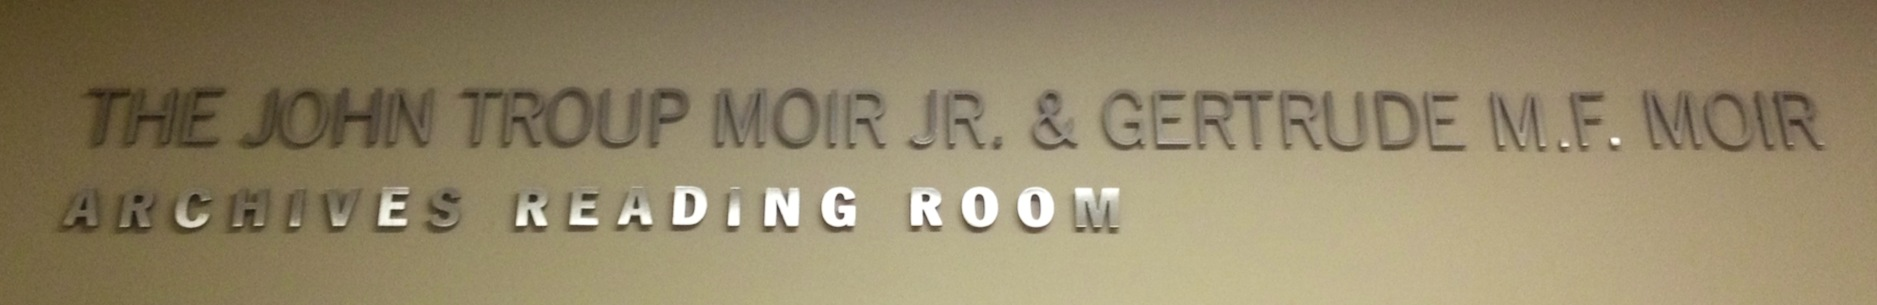 A picture of the Moir Reading Room sign